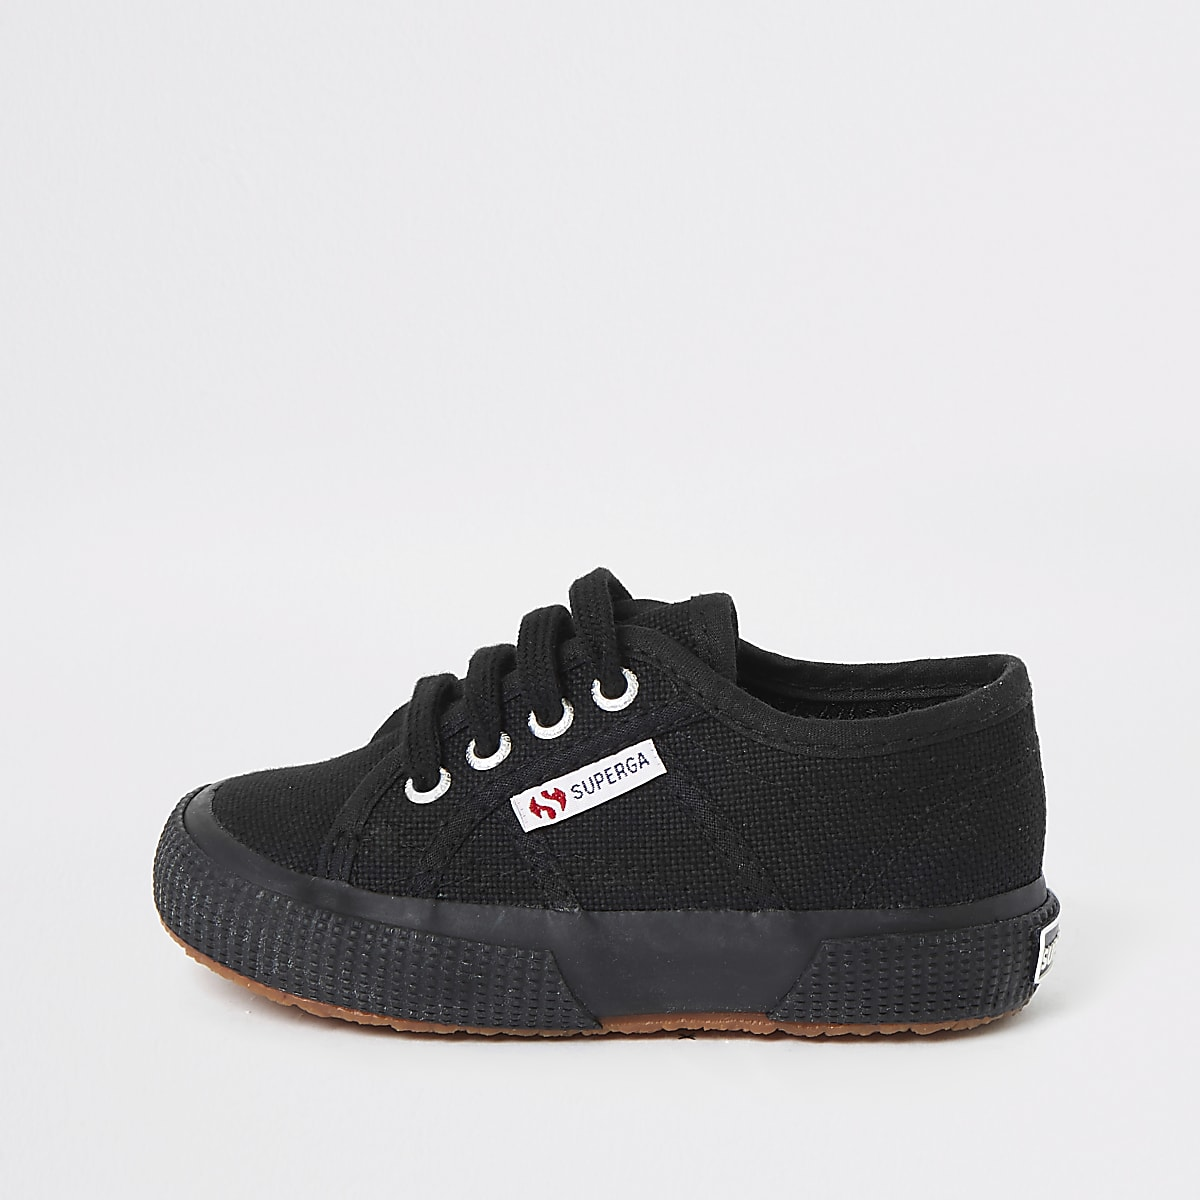 Kids Superga black lace-up plimsolls